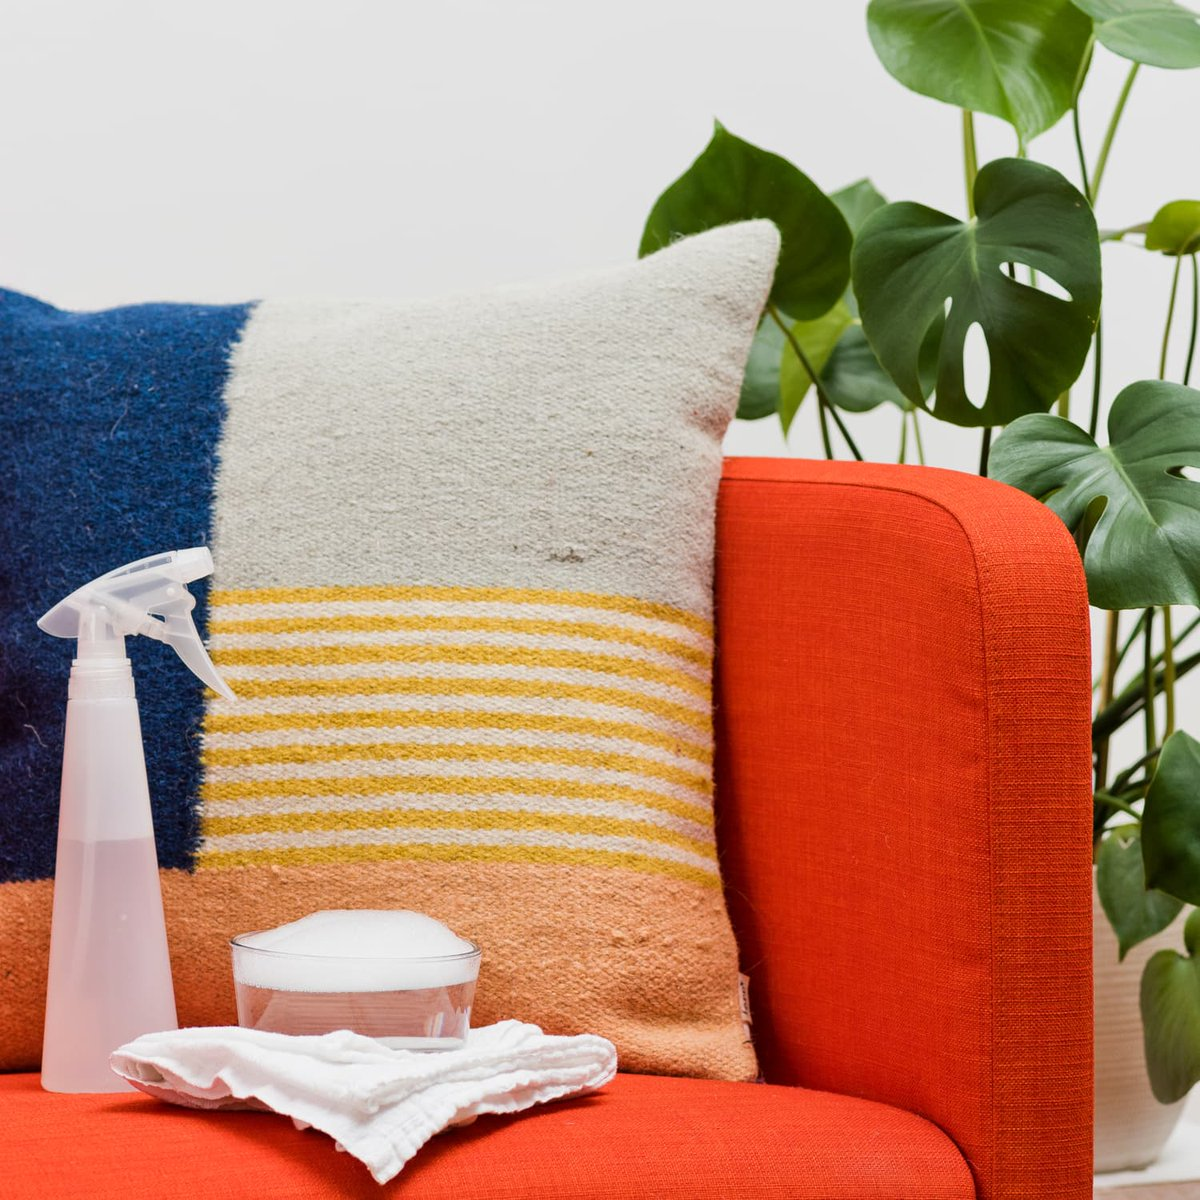 Learn how to clean your upholstered couches and chairs and remove stains. #cleaningproducts. #cleaning #clean #cleaningservice #home #cleaningtips http://ow.ly/Ipfc30pWcmUpic.twitter.com/AOmZKxN9QF